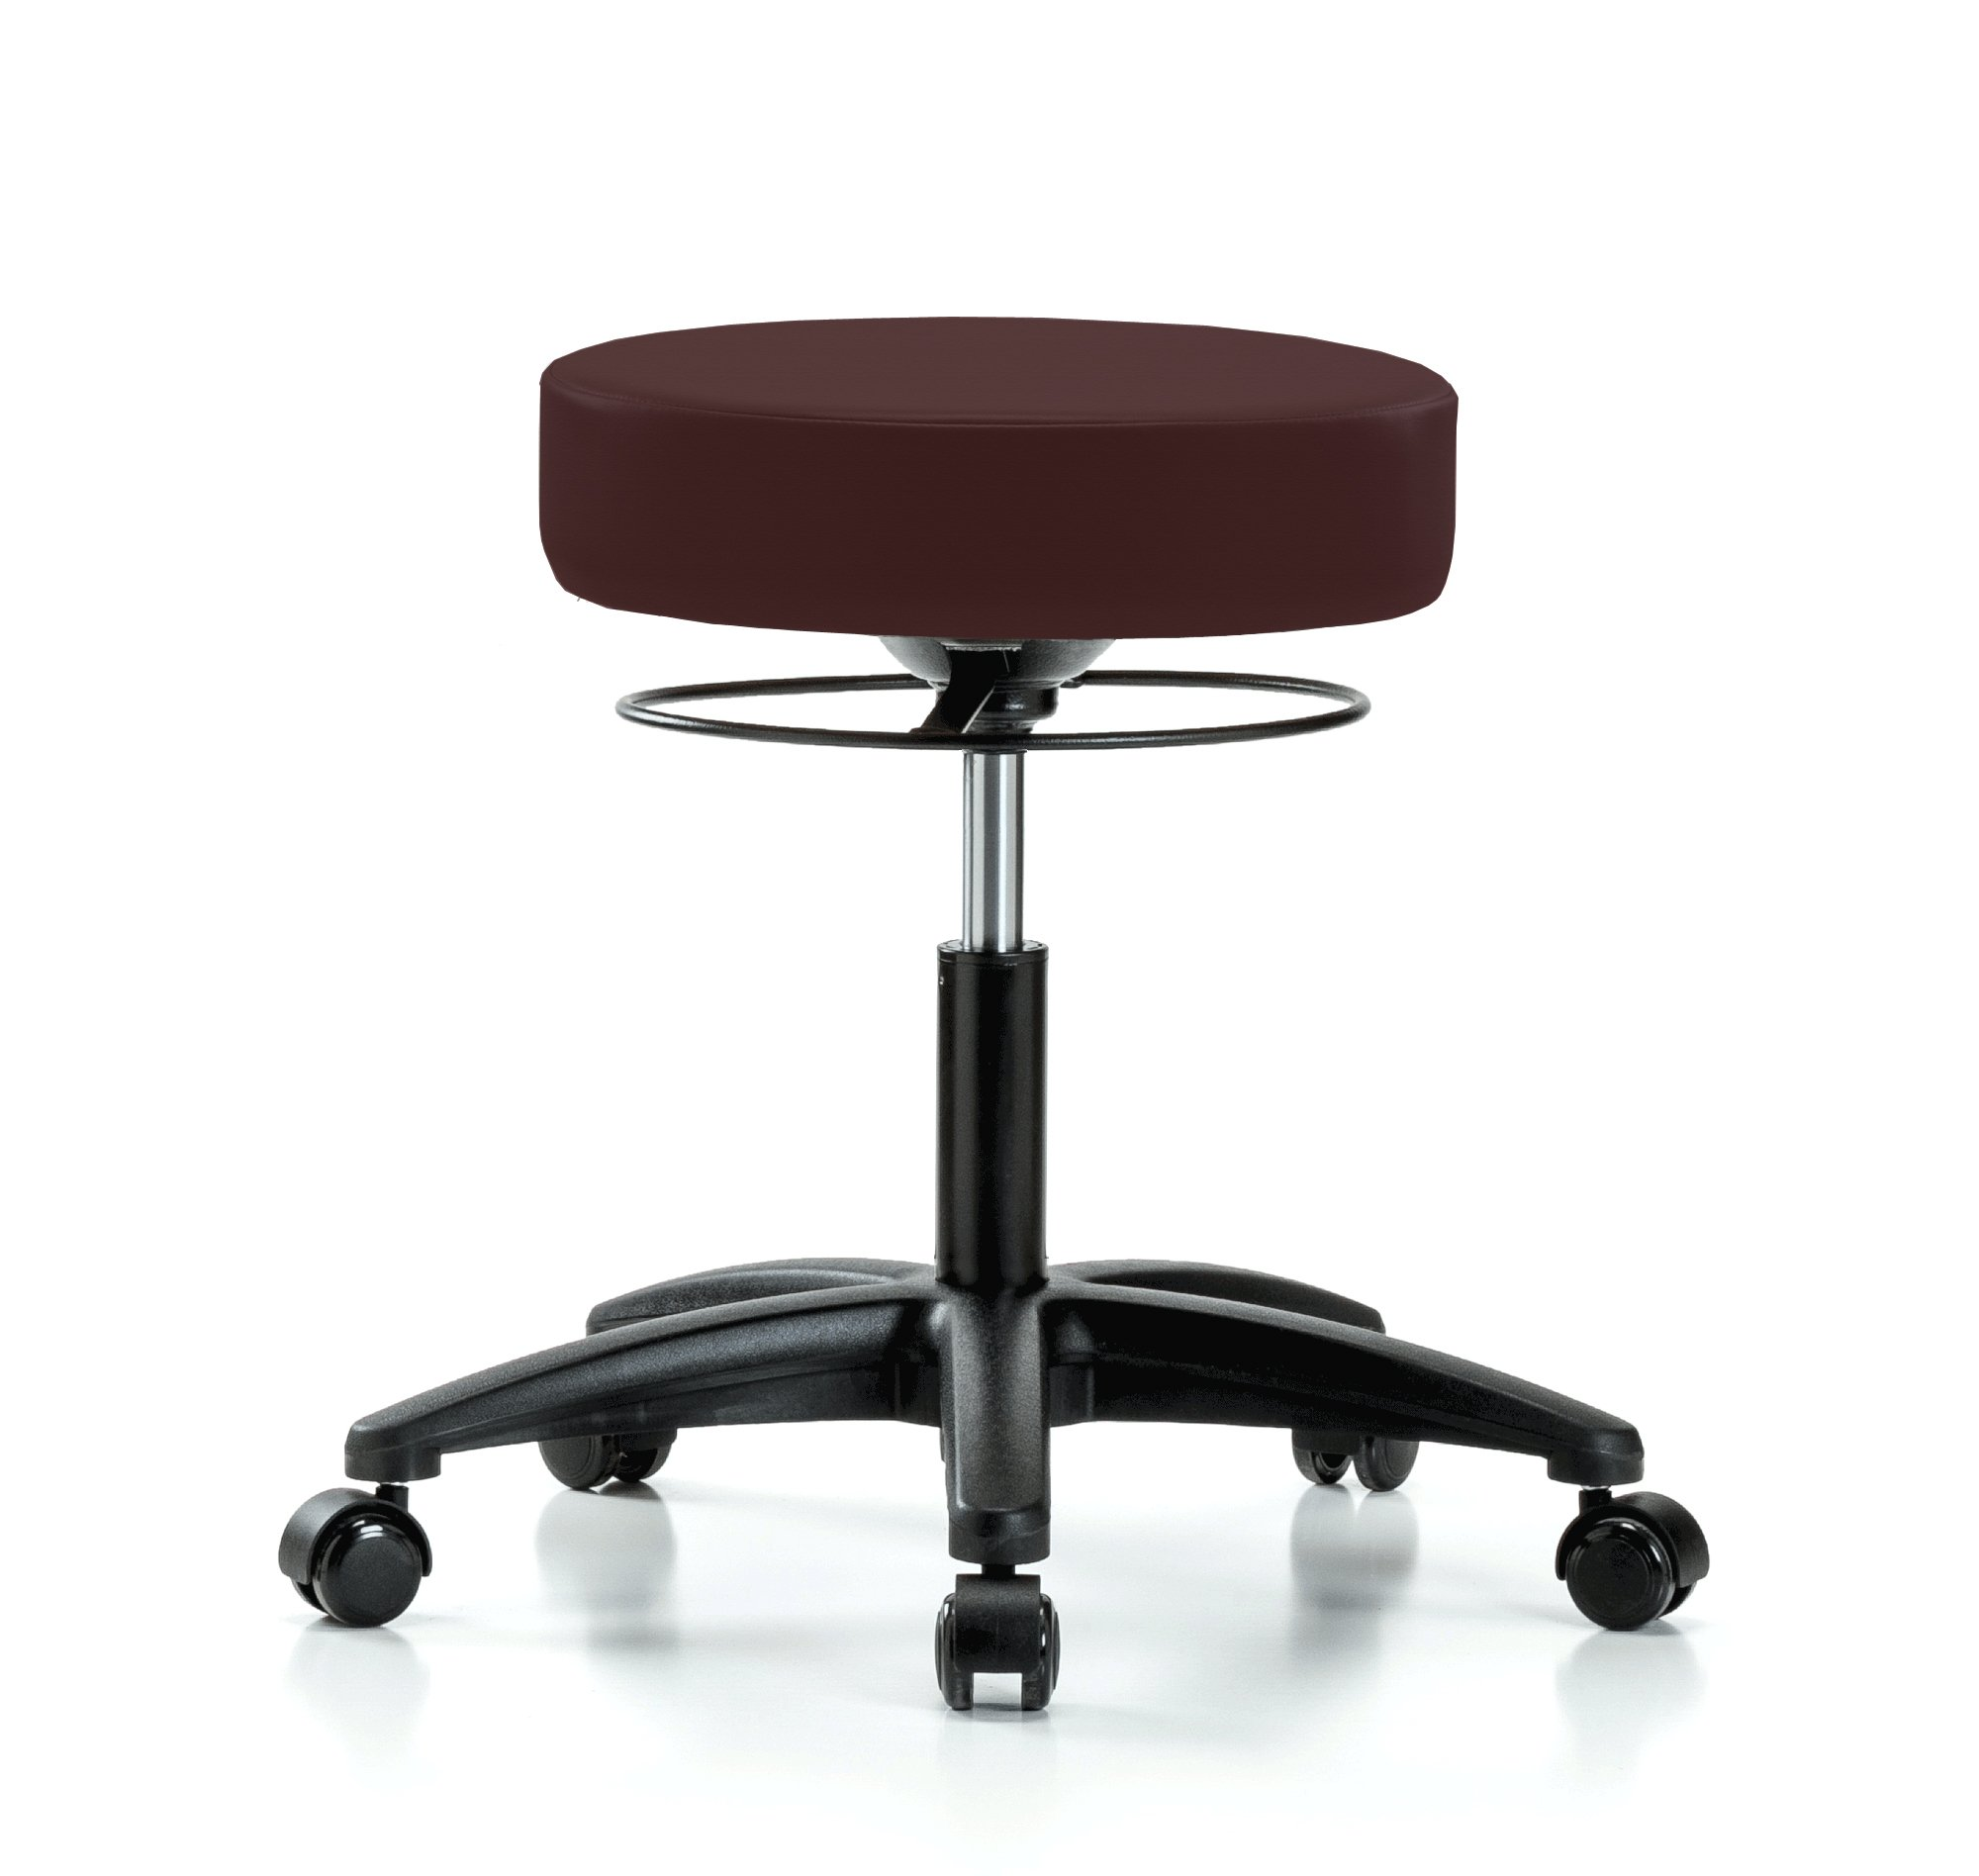 Perch Stella Rolling Adjustable Stool Medical Salon Spa Massage Tattoo Office 18.5'' - 24'' (Hard Floor Casters/Burgundy Fabric)